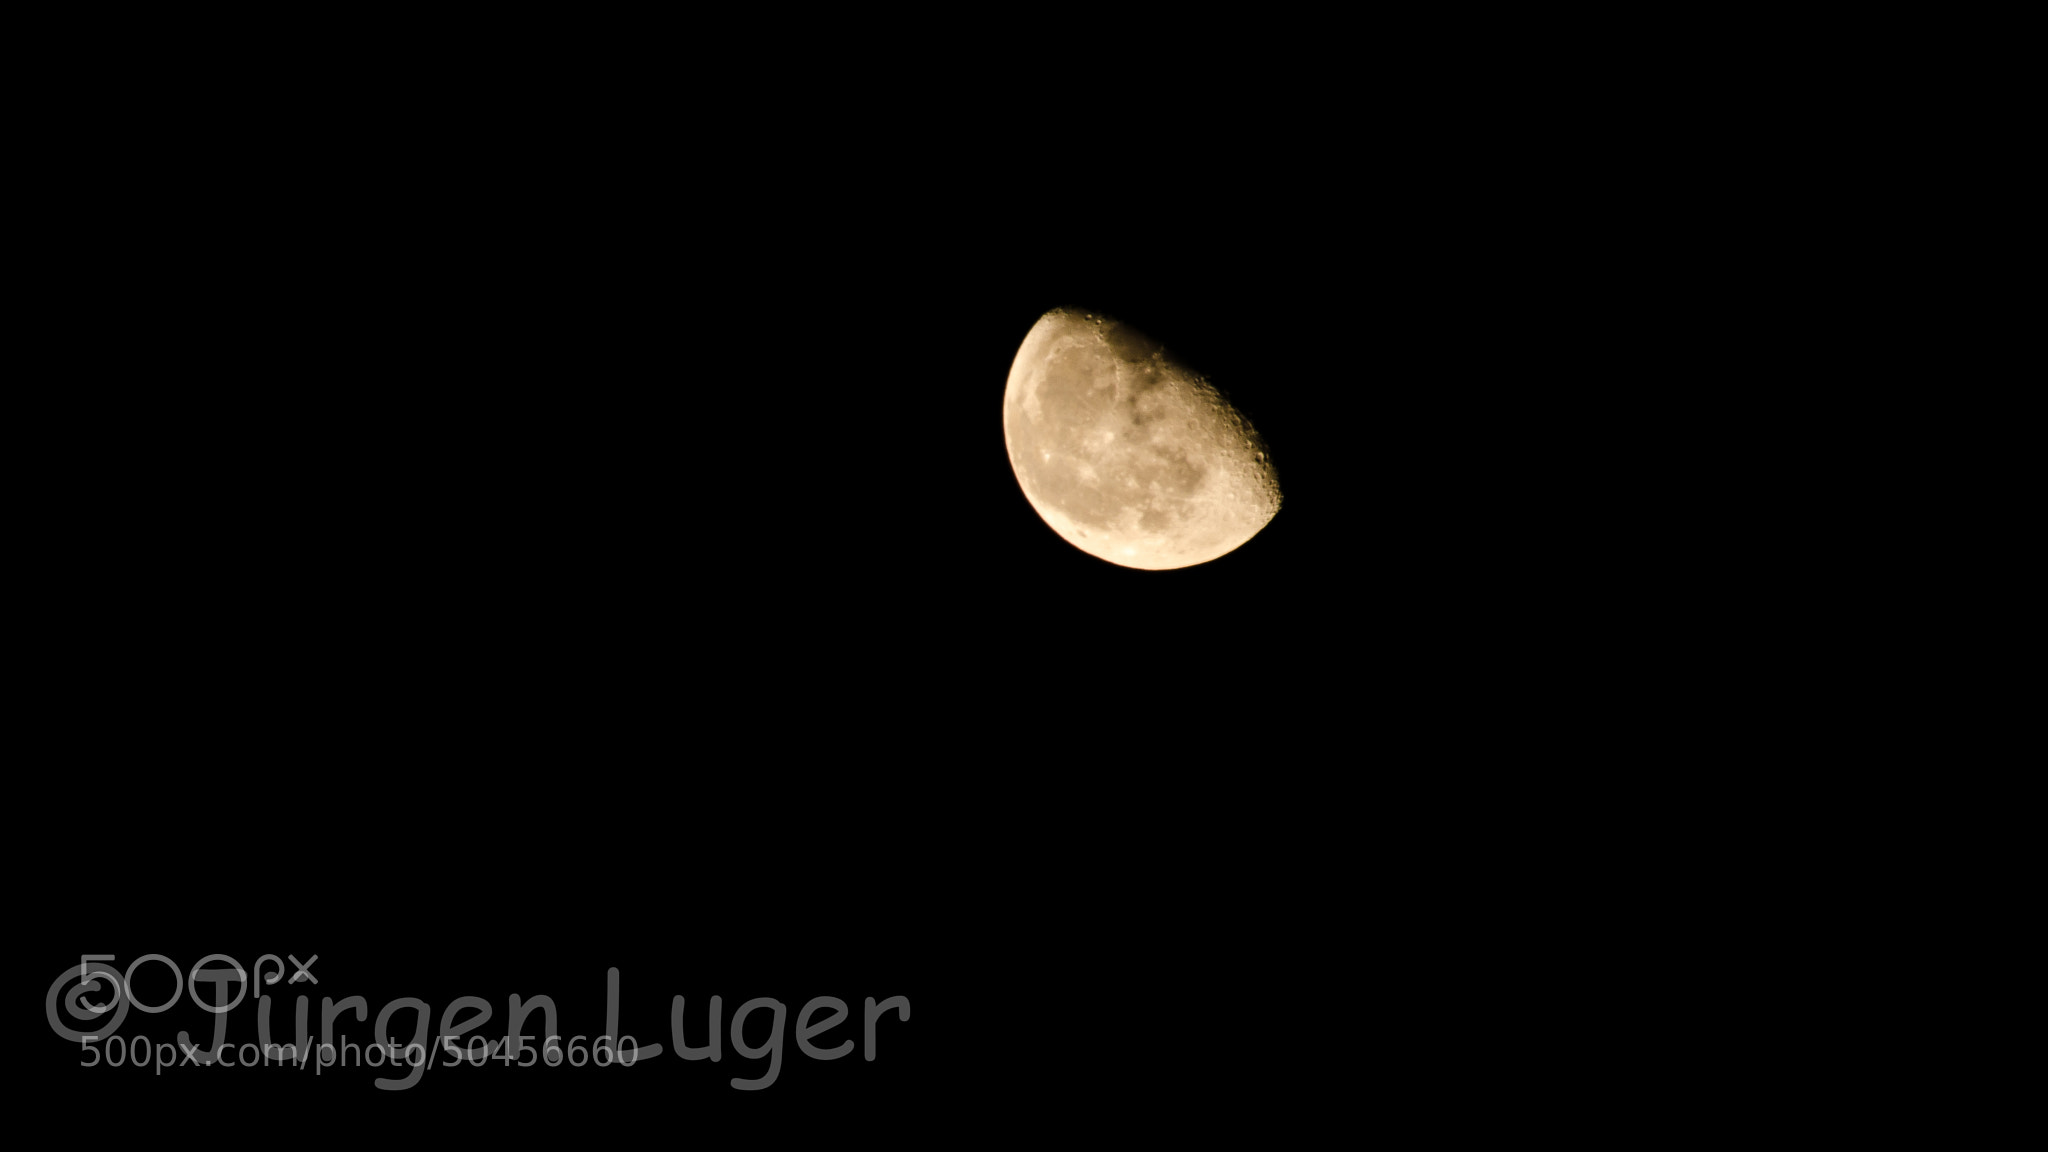 Photograph Moon by Jürgen Luger on 500px